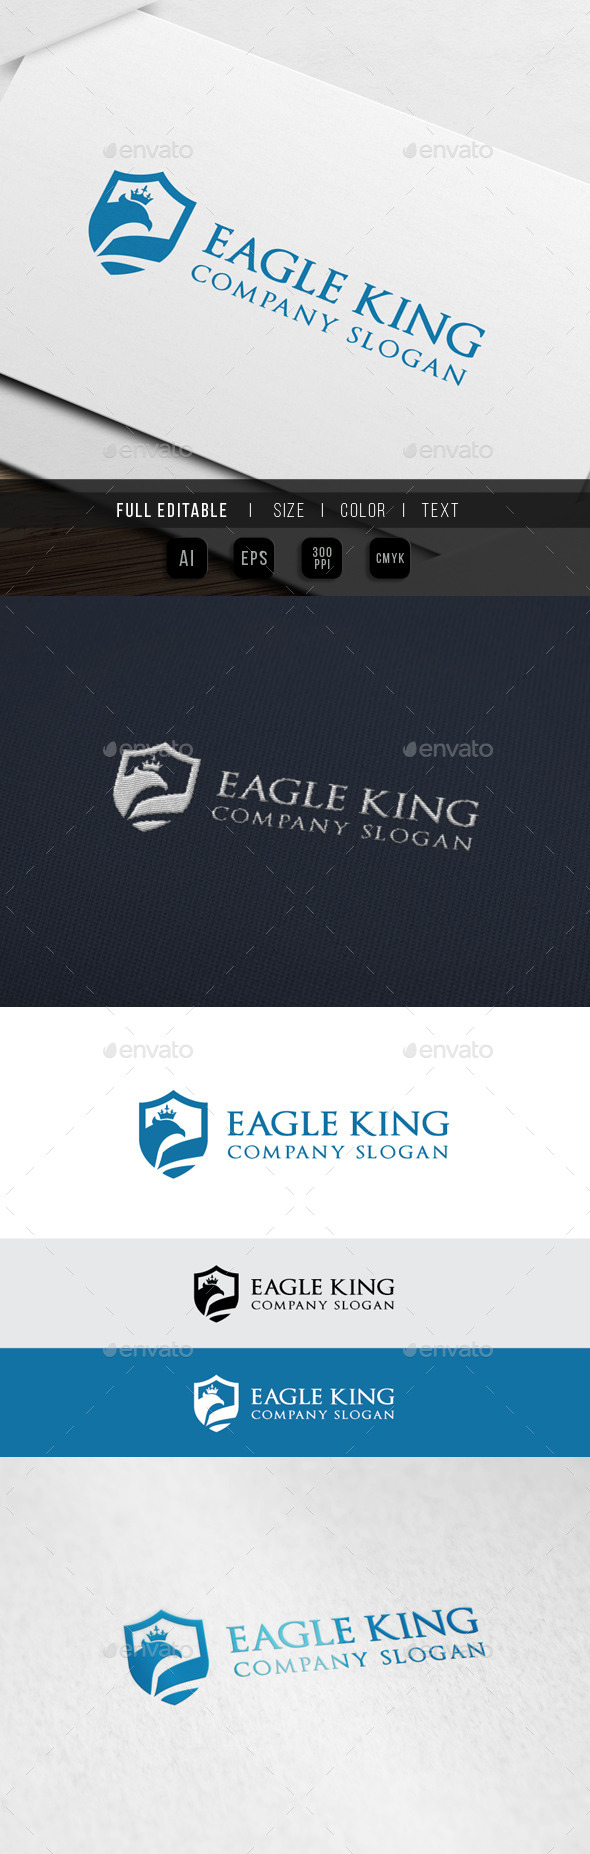 Eagle King Consulting Logo - Crests Logo Templates